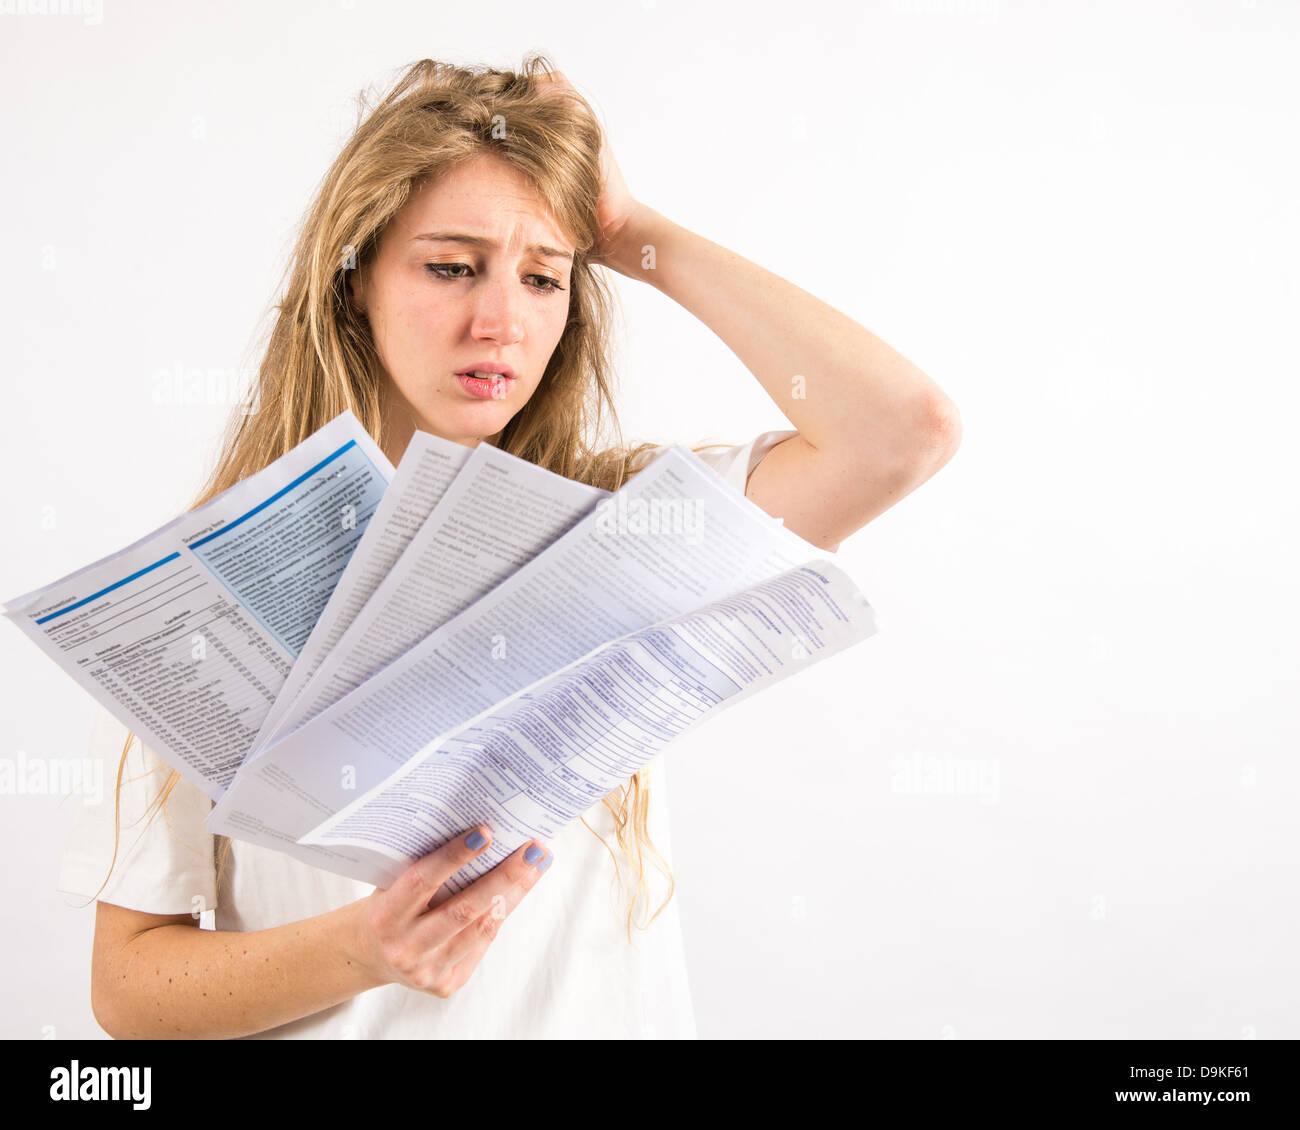 A young woman with long blonde hair worried about paying her household utility bills - money worries - Stock Image